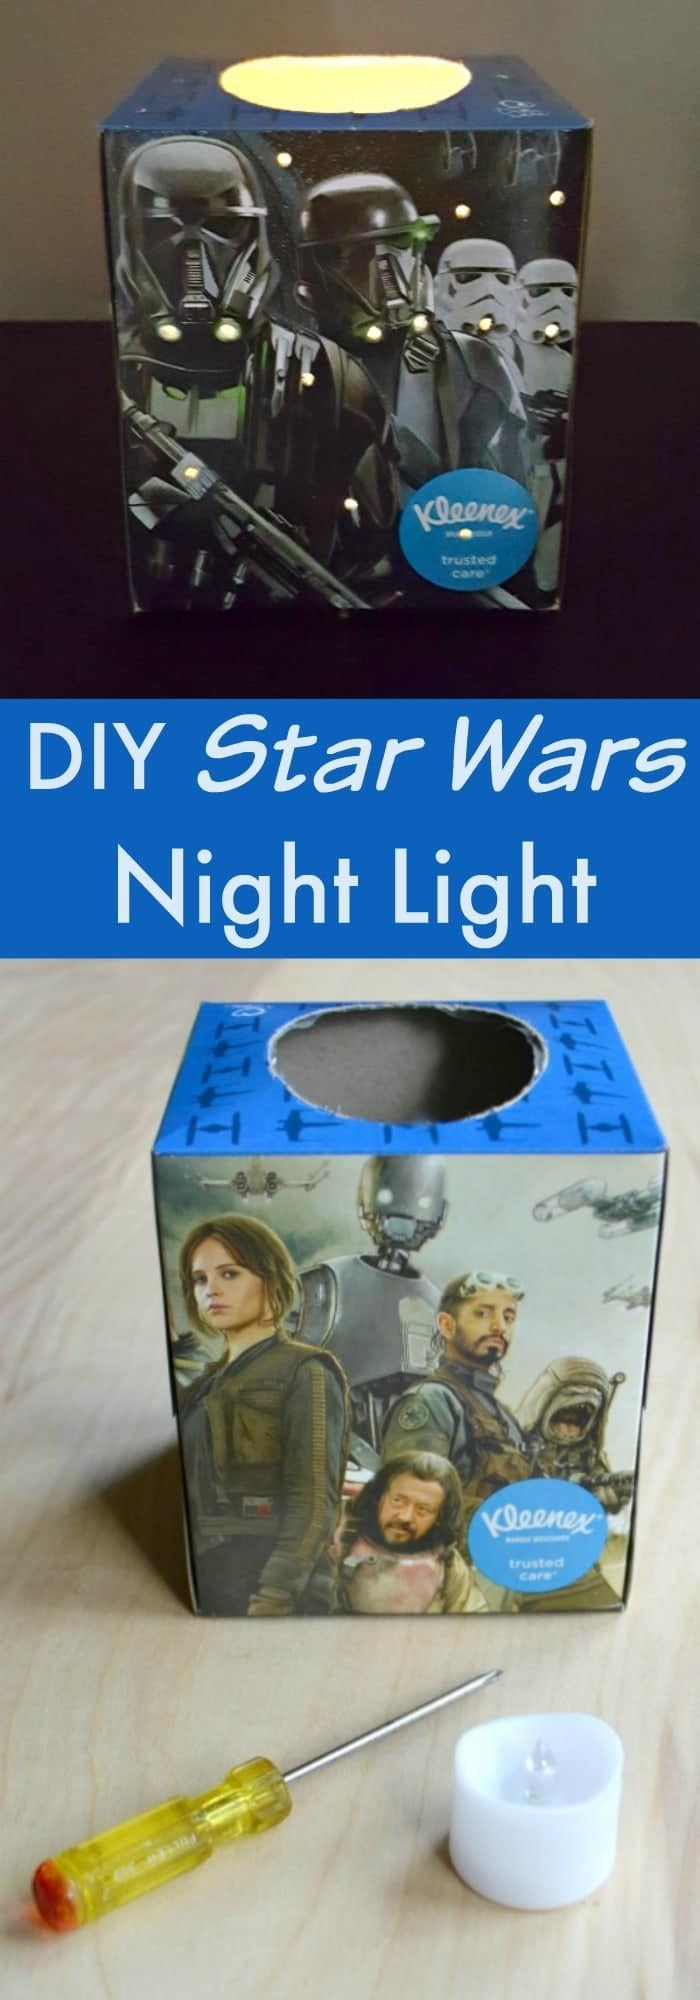 You only need a few items to make this Star Wars night light. It's a super fun craft to do with the kids!